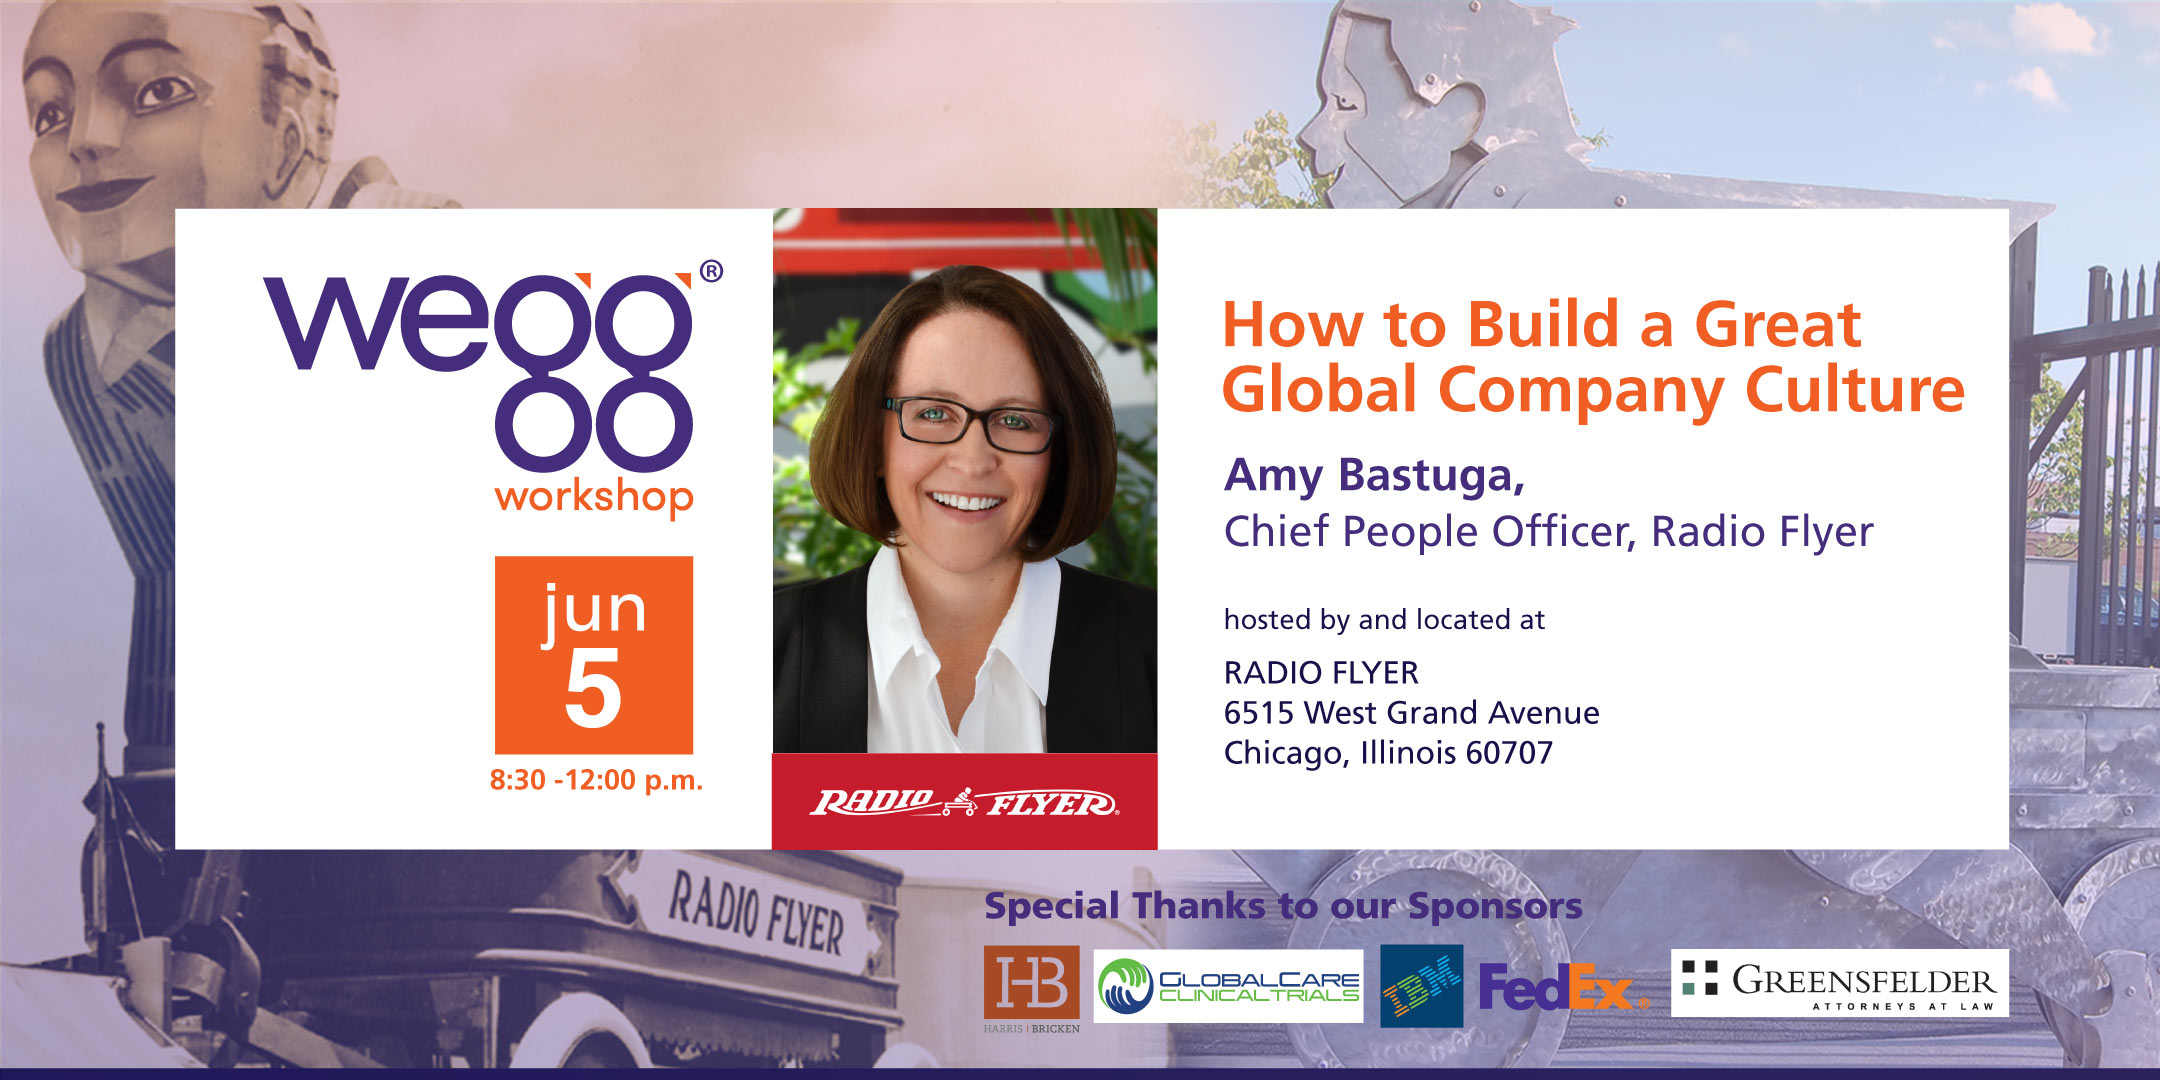 "How to Build a Great Global Company Culture<br><h5>Amy Bastuga, Chief People Officer, Radio Flyer<br> <span class=""bd"">June 5, 2019</span></h5>"